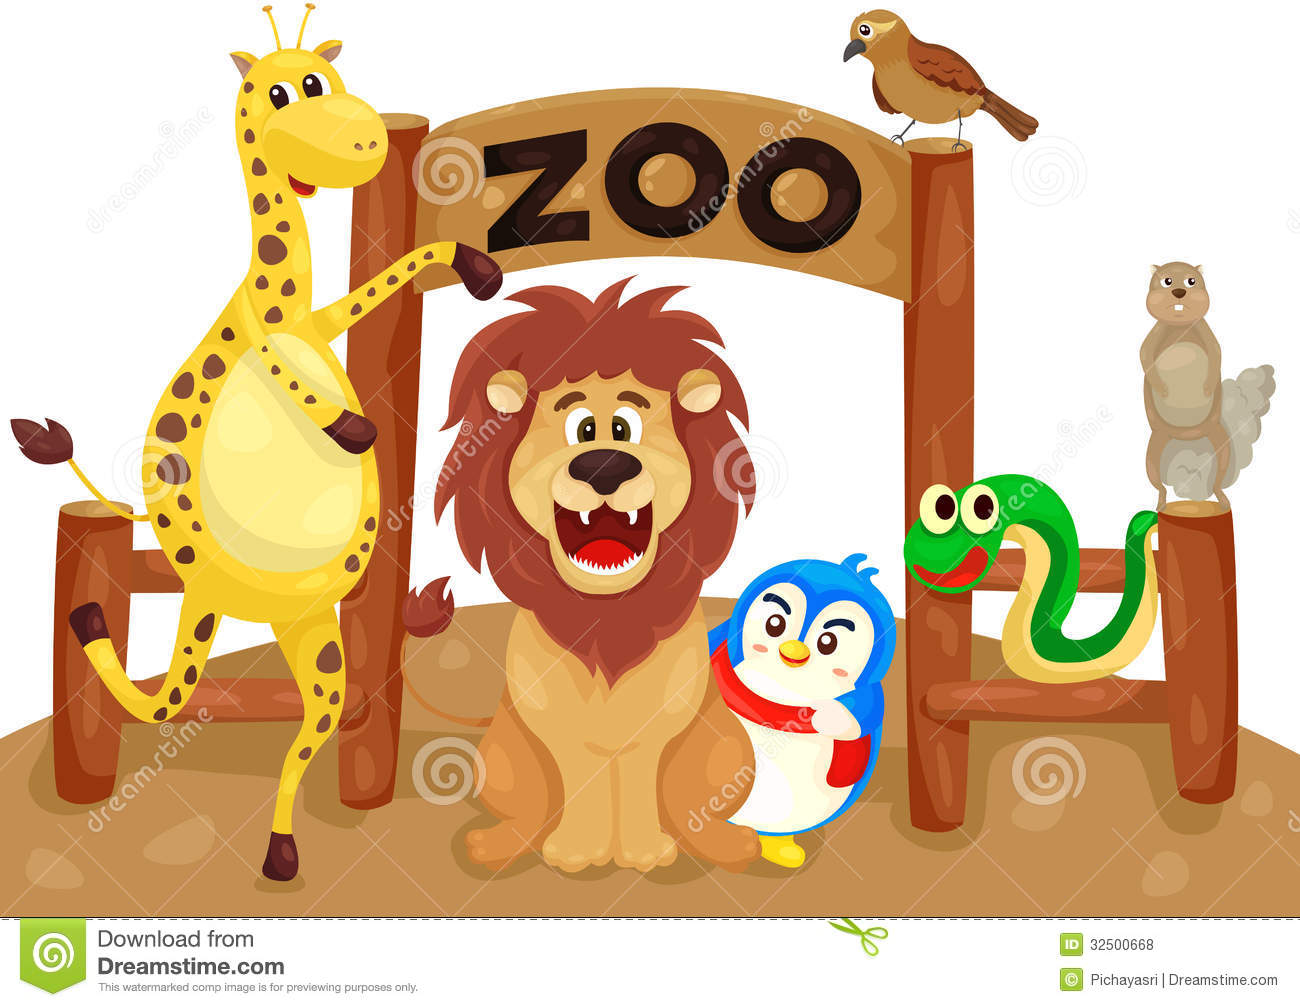 Zoo gift shop sign clipart graphic royalty free download Zoo clipart 6 » Clipart Station graphic royalty free download